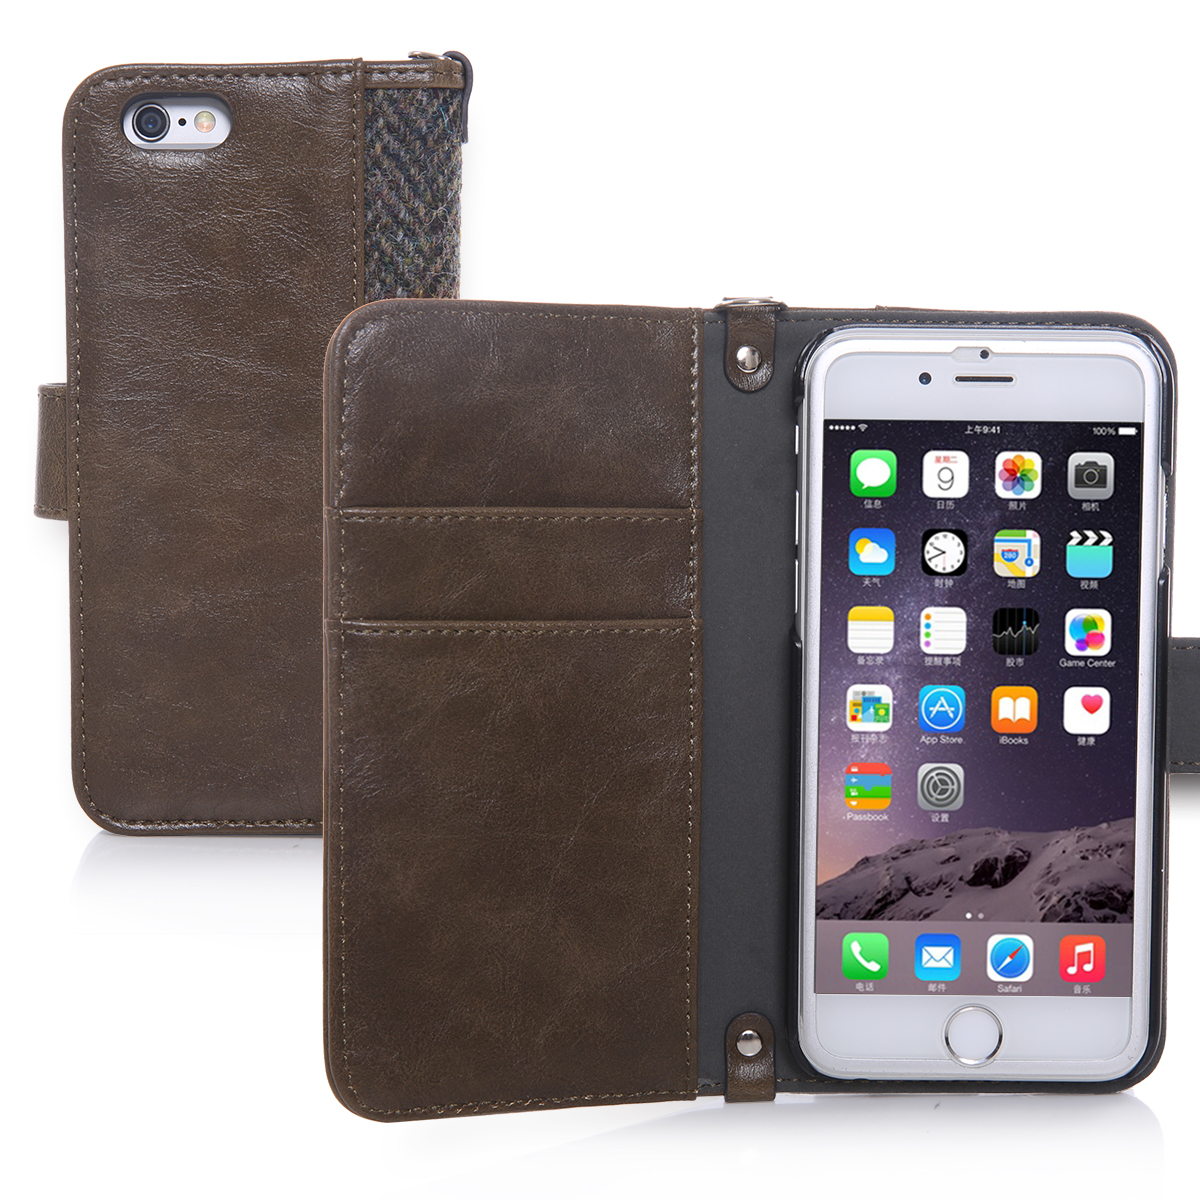 Harris Tweed iPhone 6 Case, Hard PC+ Premium Cotton Material Wallet Phone Case